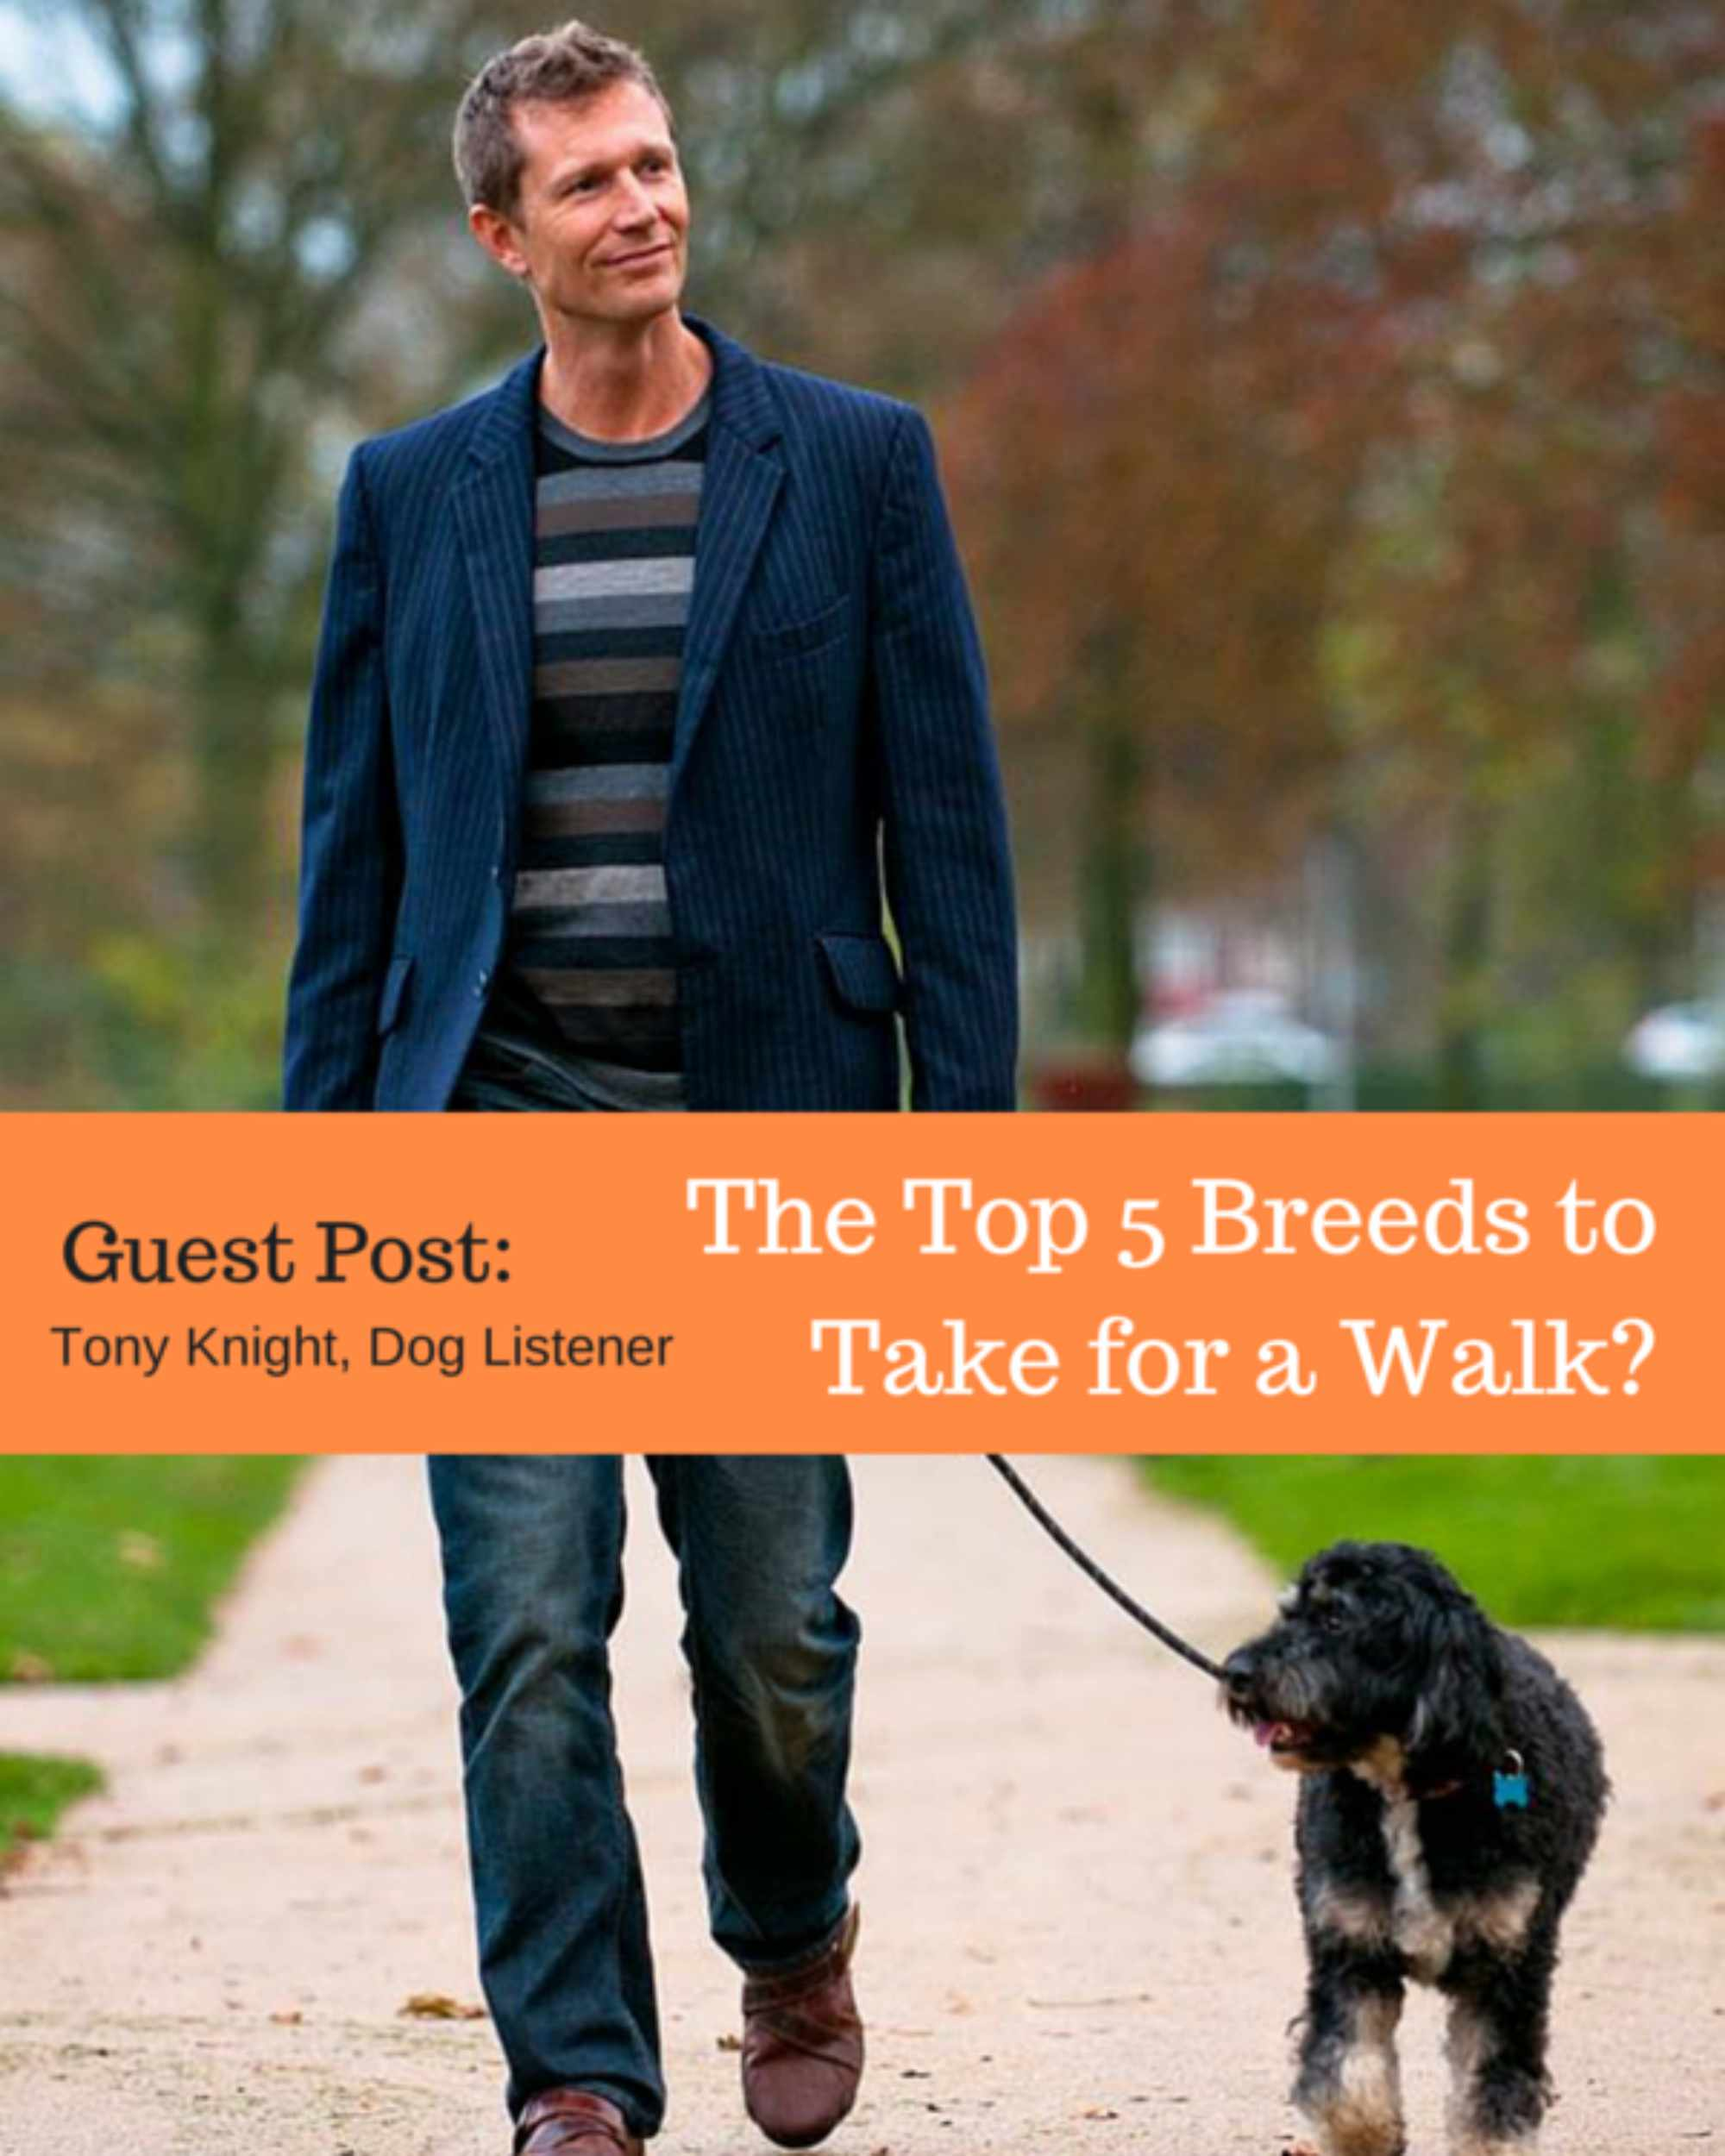 Guest Post: Top 5 Breeds to Take for a Walk?